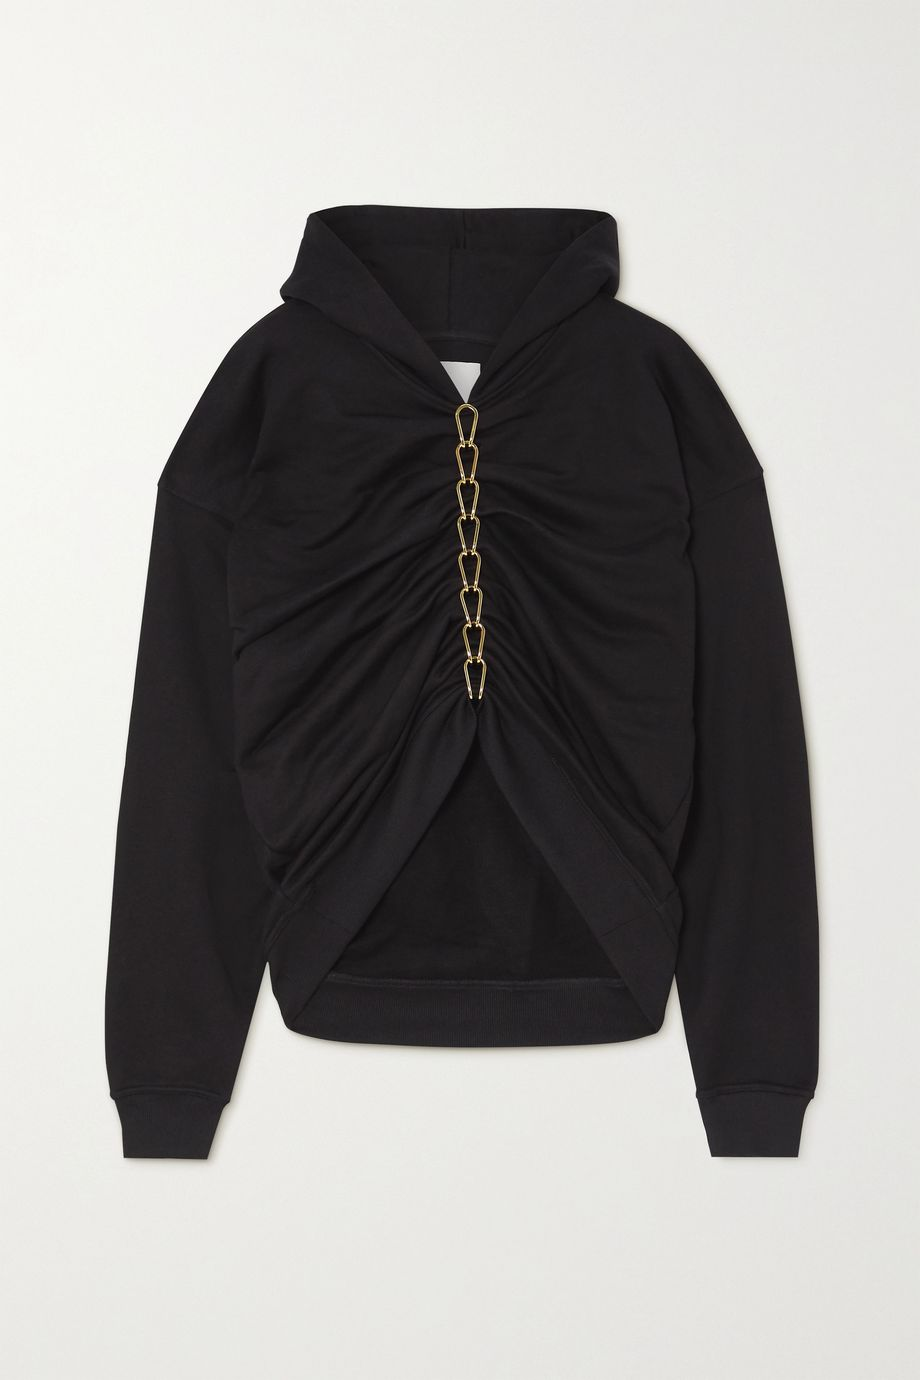 Dion Lee Chain-embellished ruched cotton-jersey hoodie